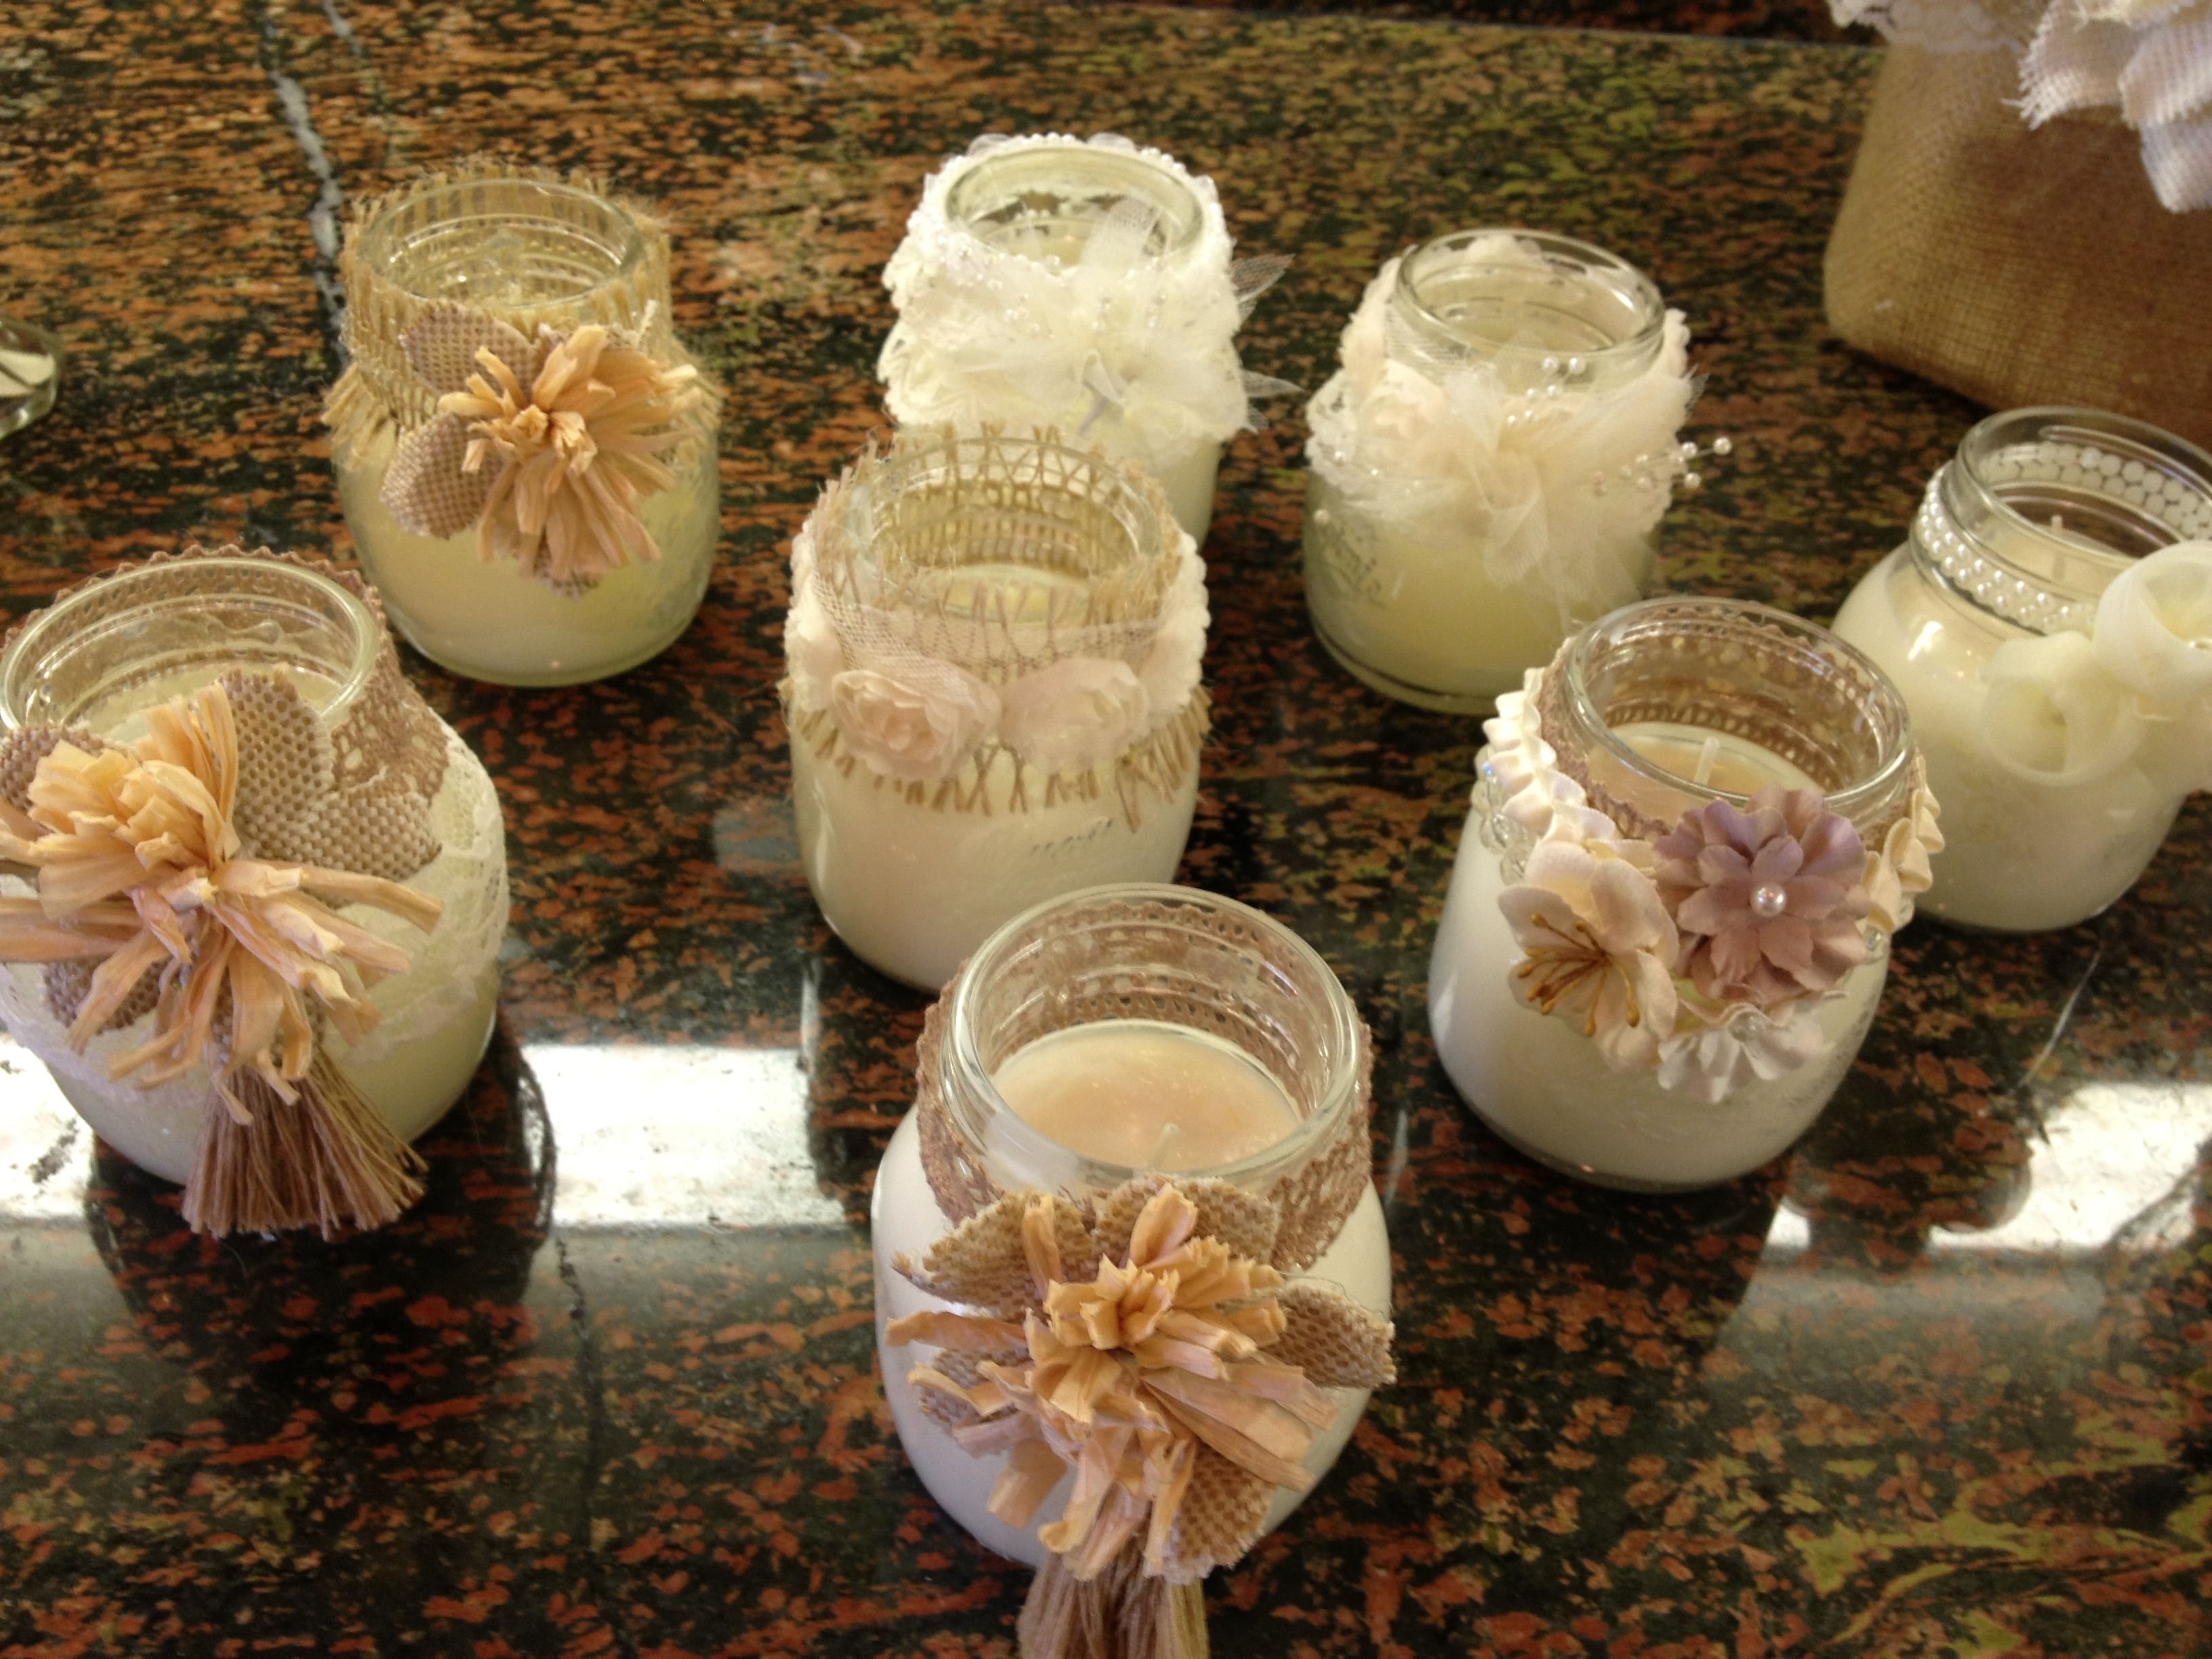 Mason jar candles craft ideas pinterest for Candle craft ideas